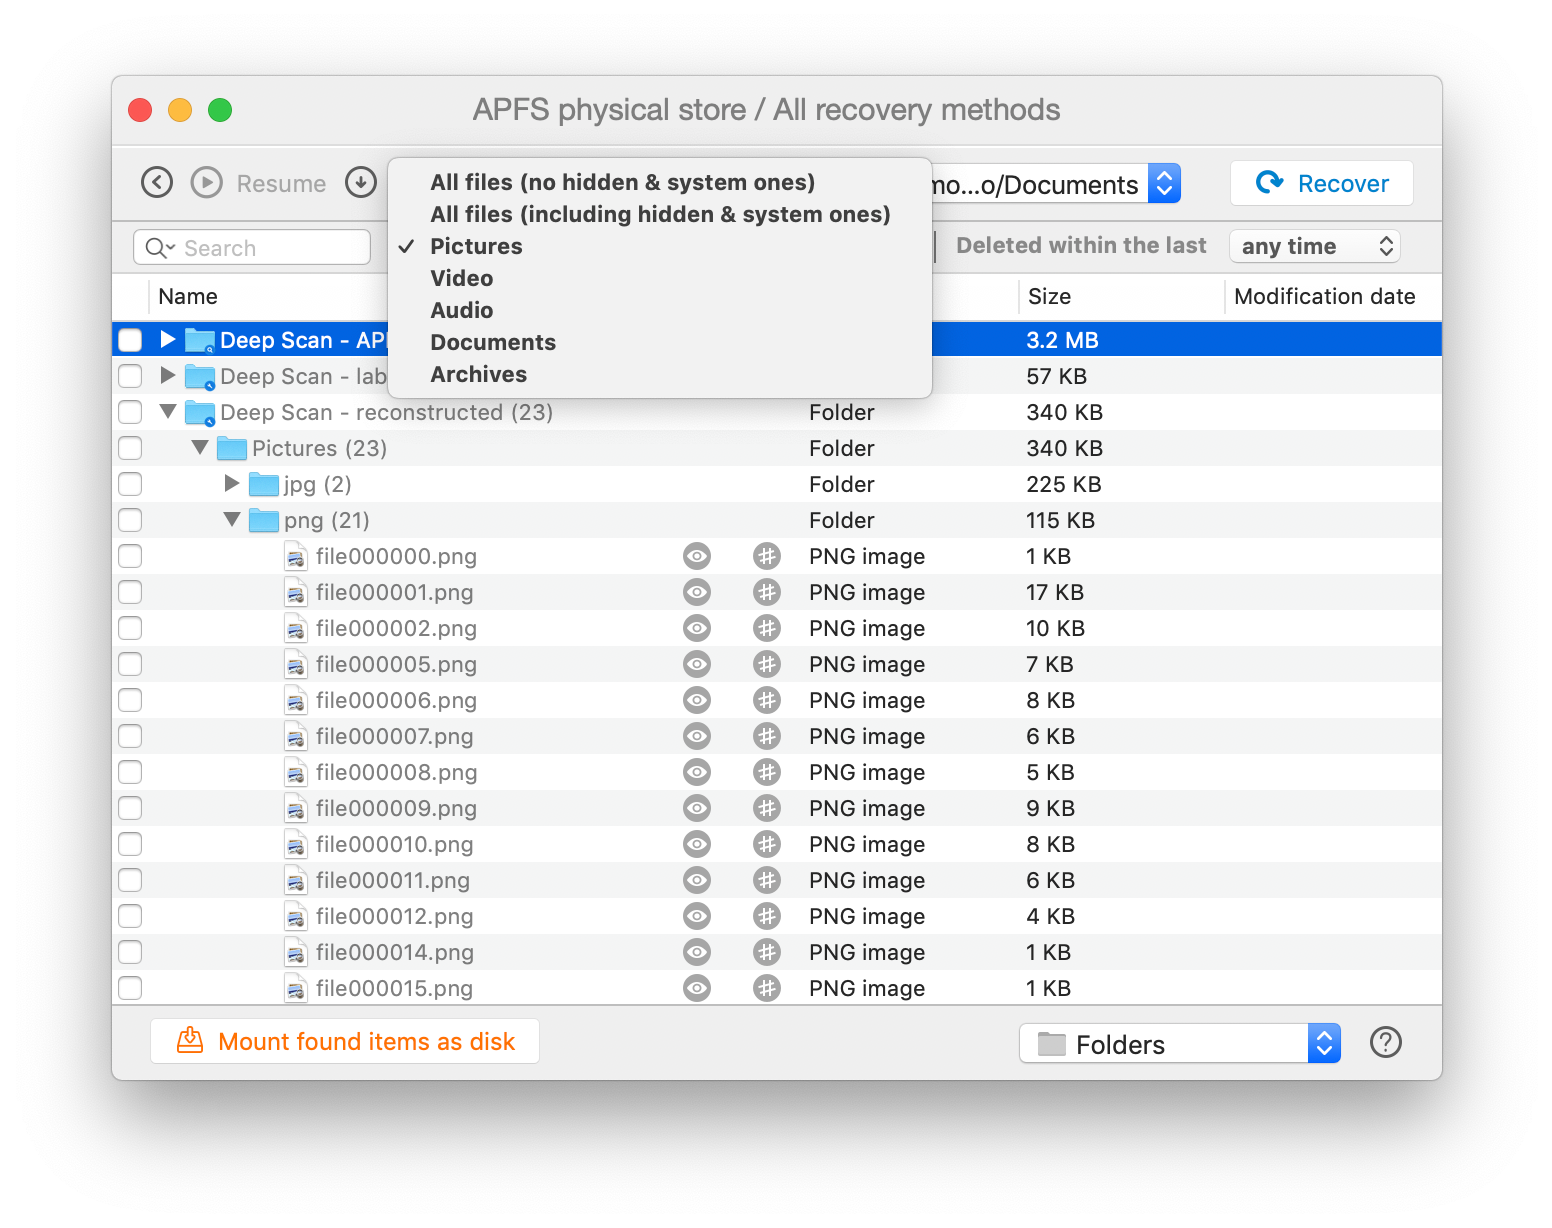 How to recover deleted photos with diskdrill